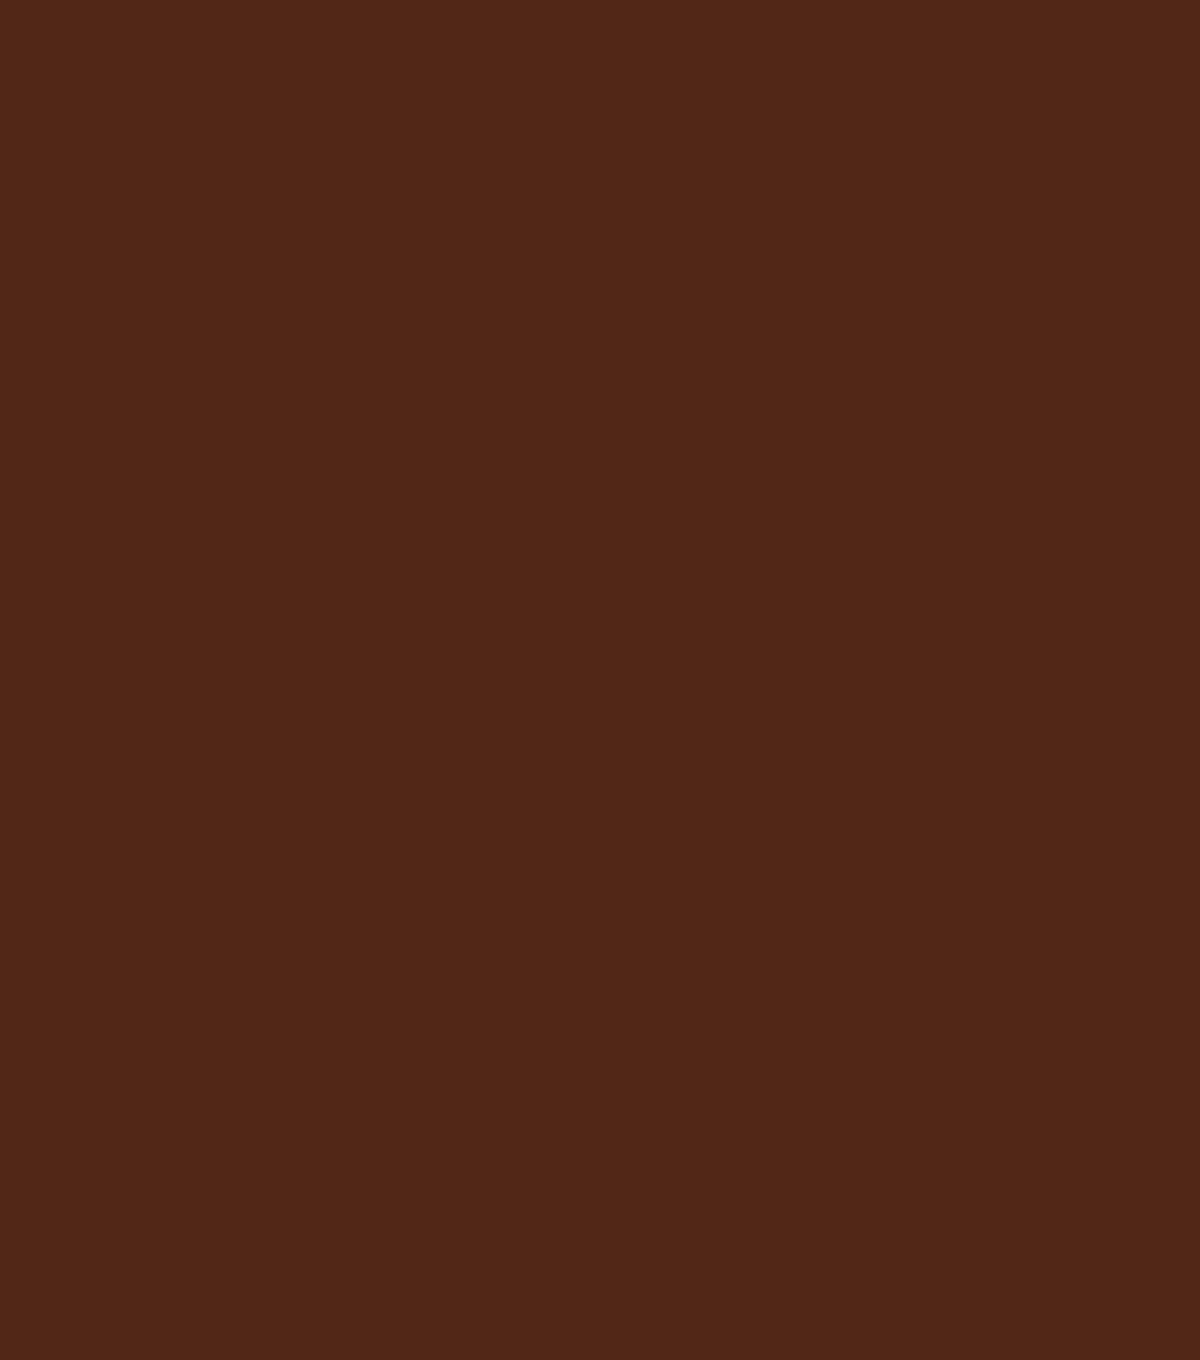 Bob Ross Oil Paint 200ml, Dark Sienna